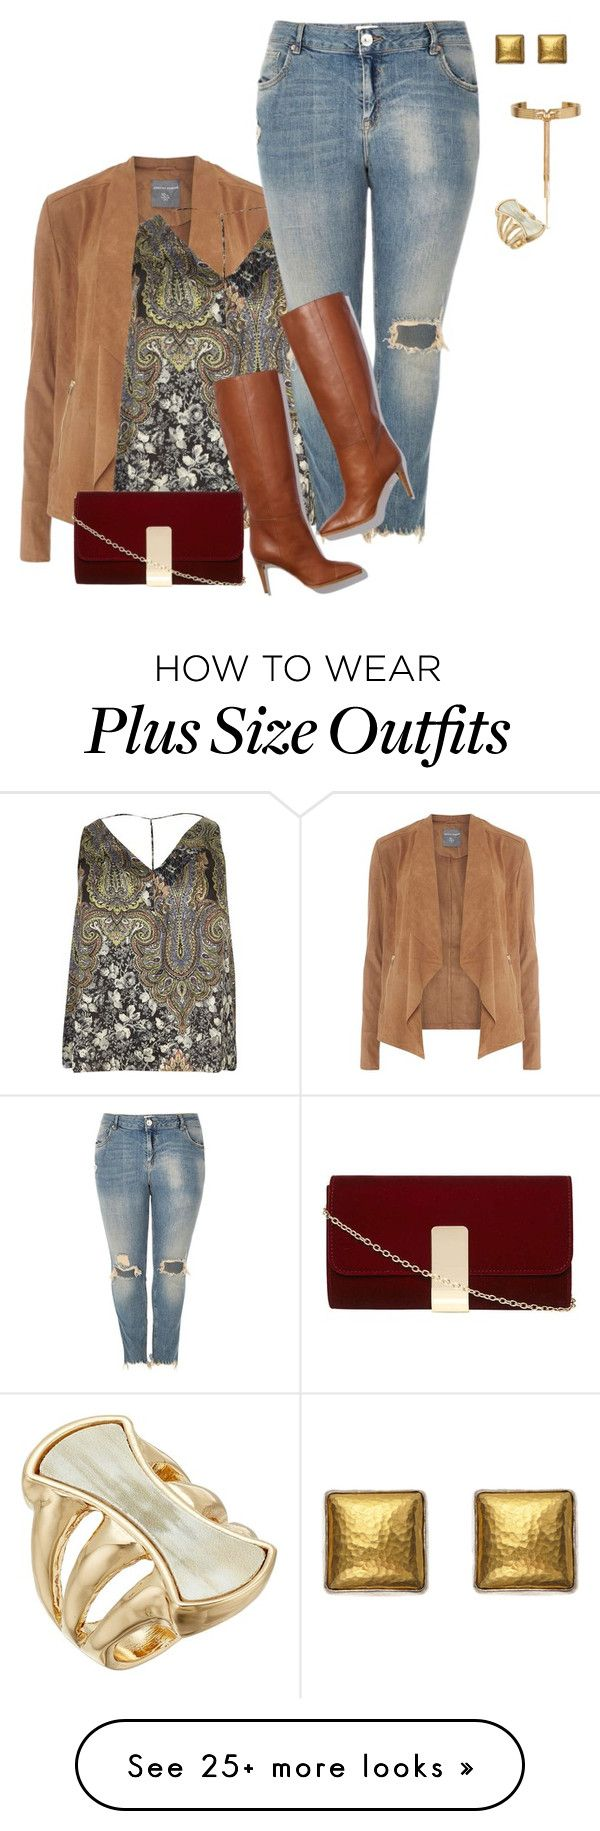 """plus size fall boho chic"" by xtrak on Polyvore featuring Dorothy Perkins, River Island, Pierre Hardy, Eddie Borgo, Robert Lee Morris and Gurhan"